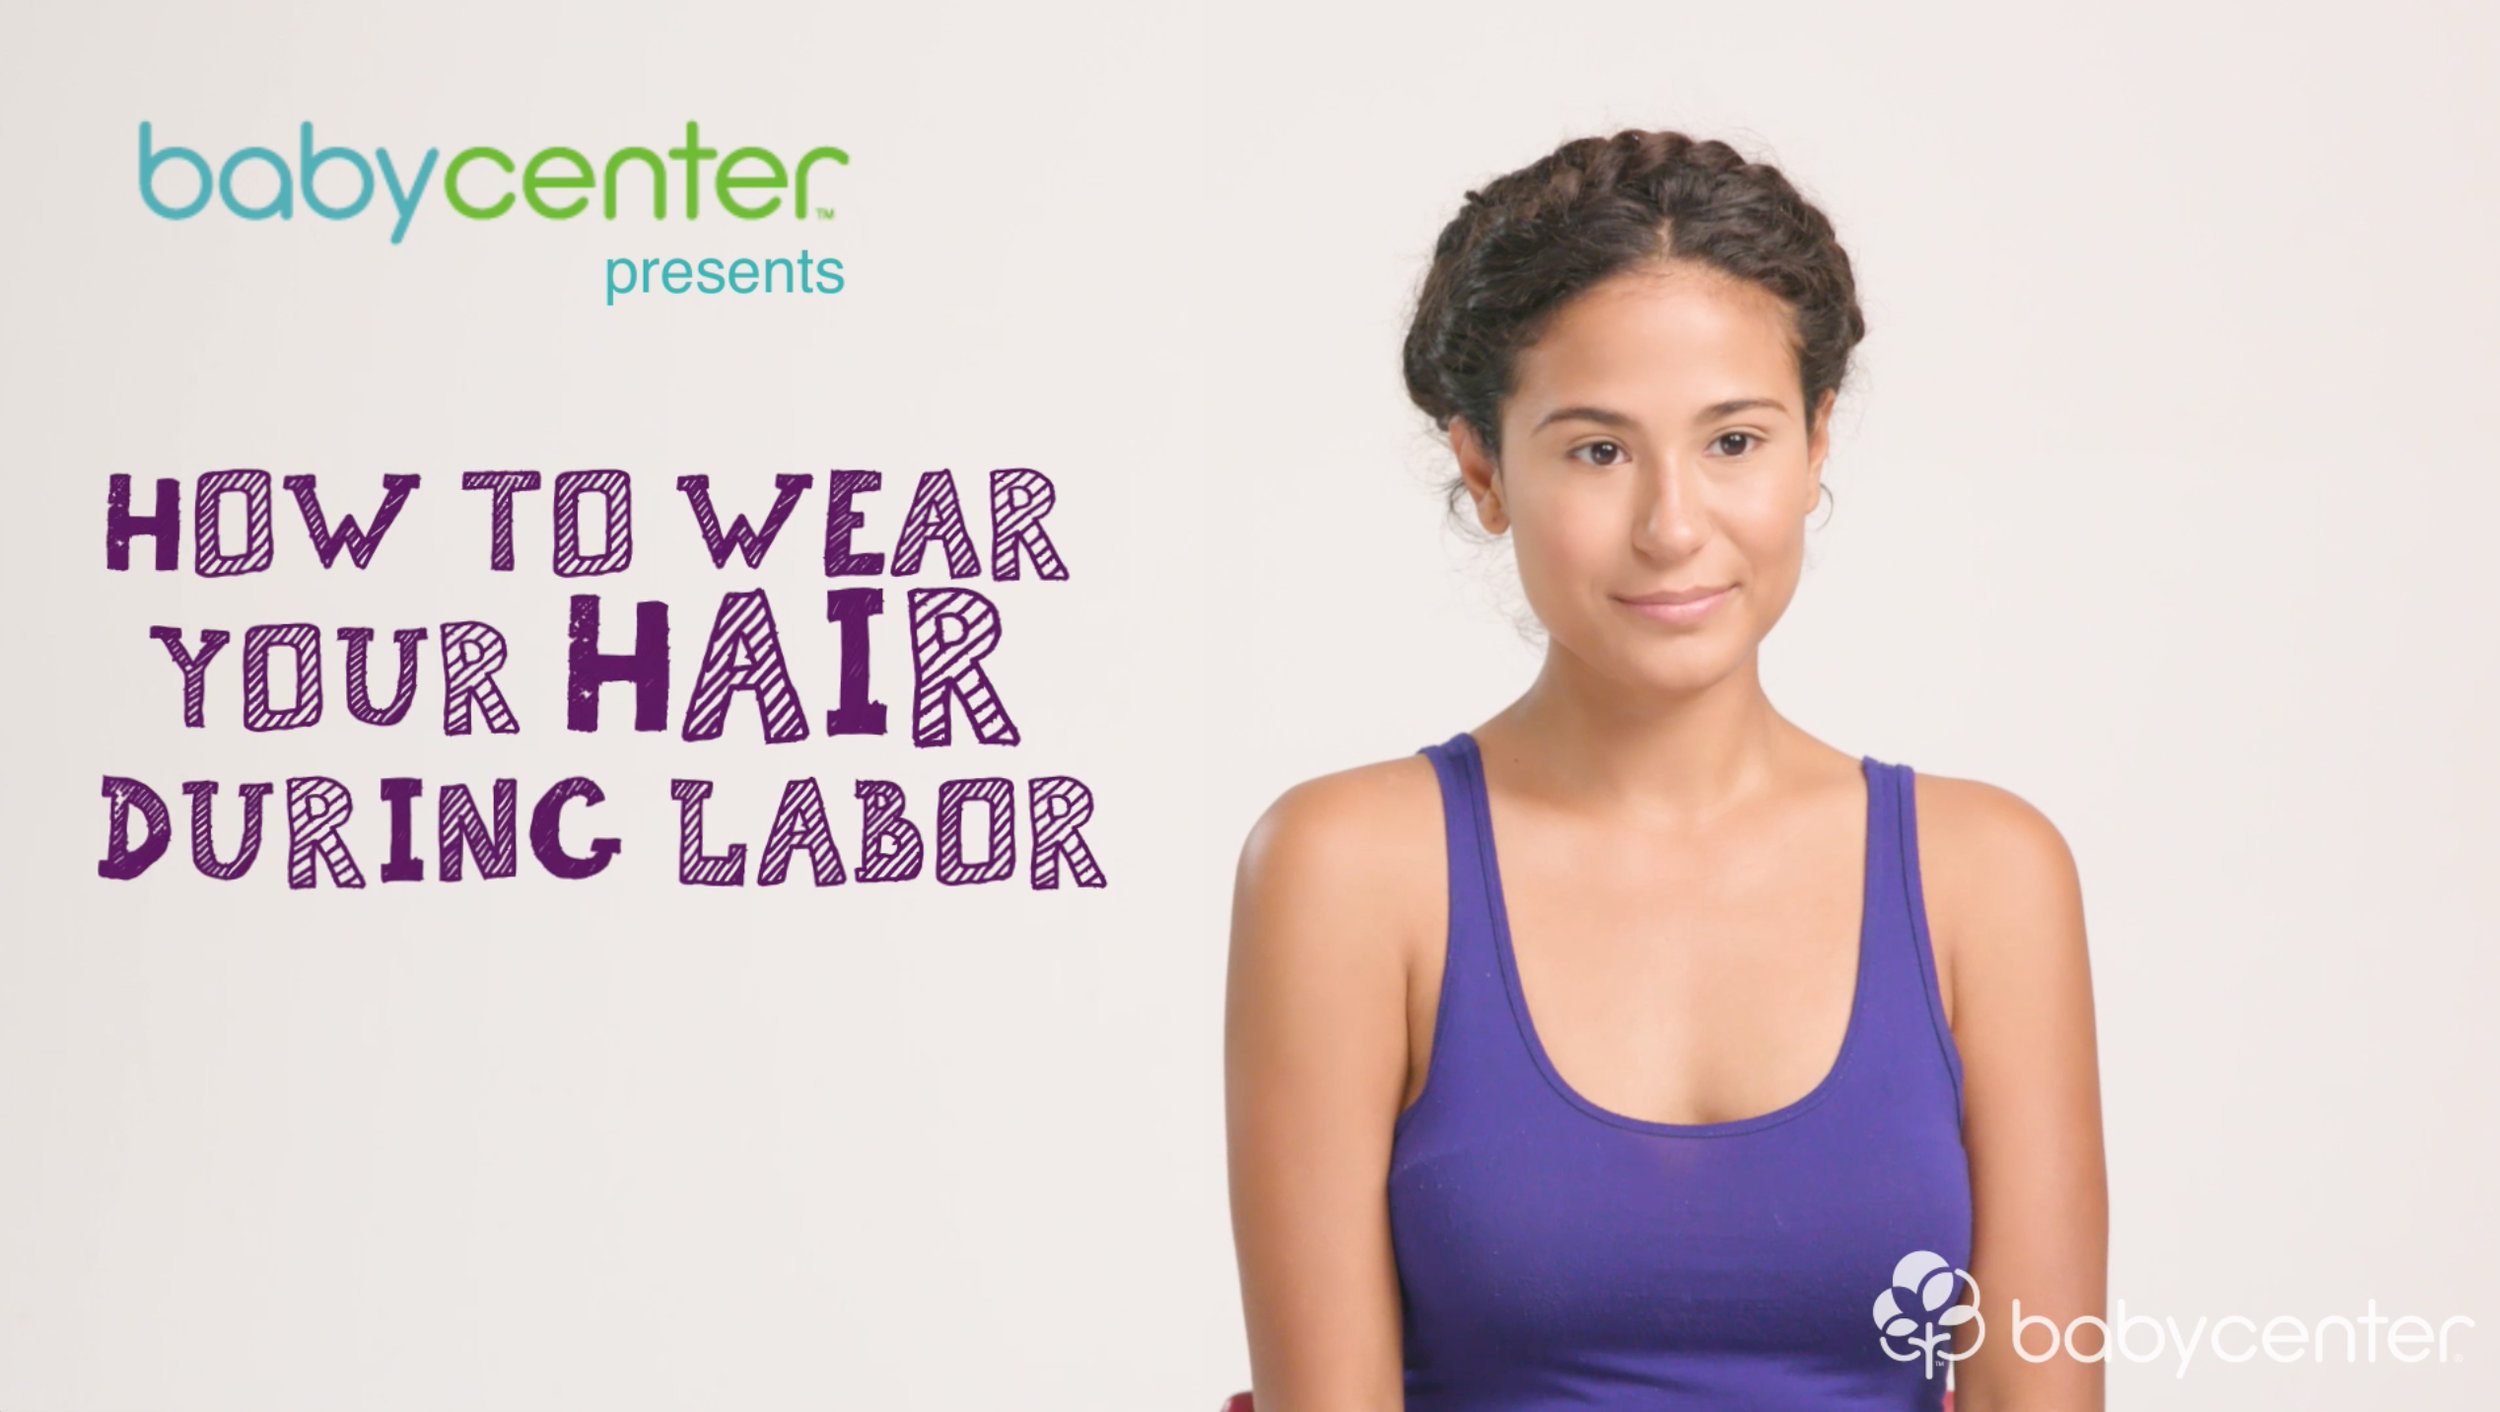 HOW TO WEAR YOUR HAIR DURING LABOR